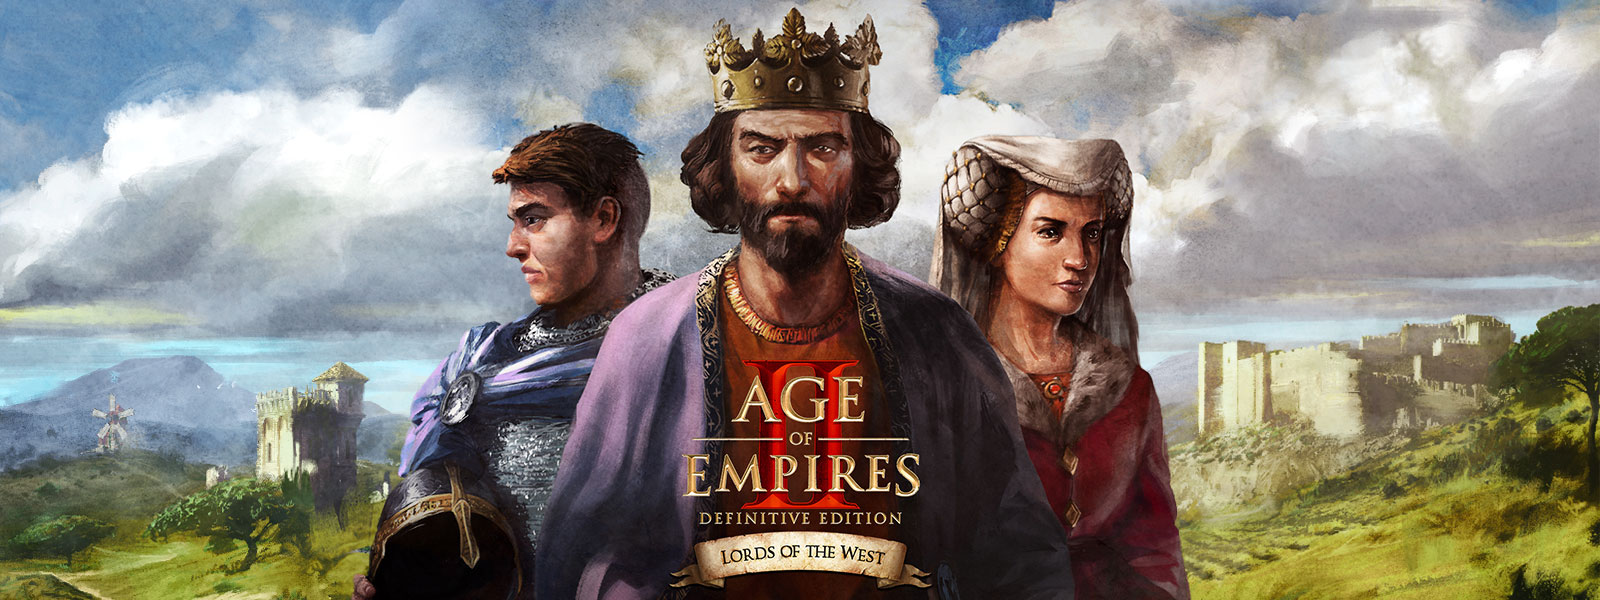 Age of Empires II: Definitive Edition. Lords of the West. Tre personaggi in posa.